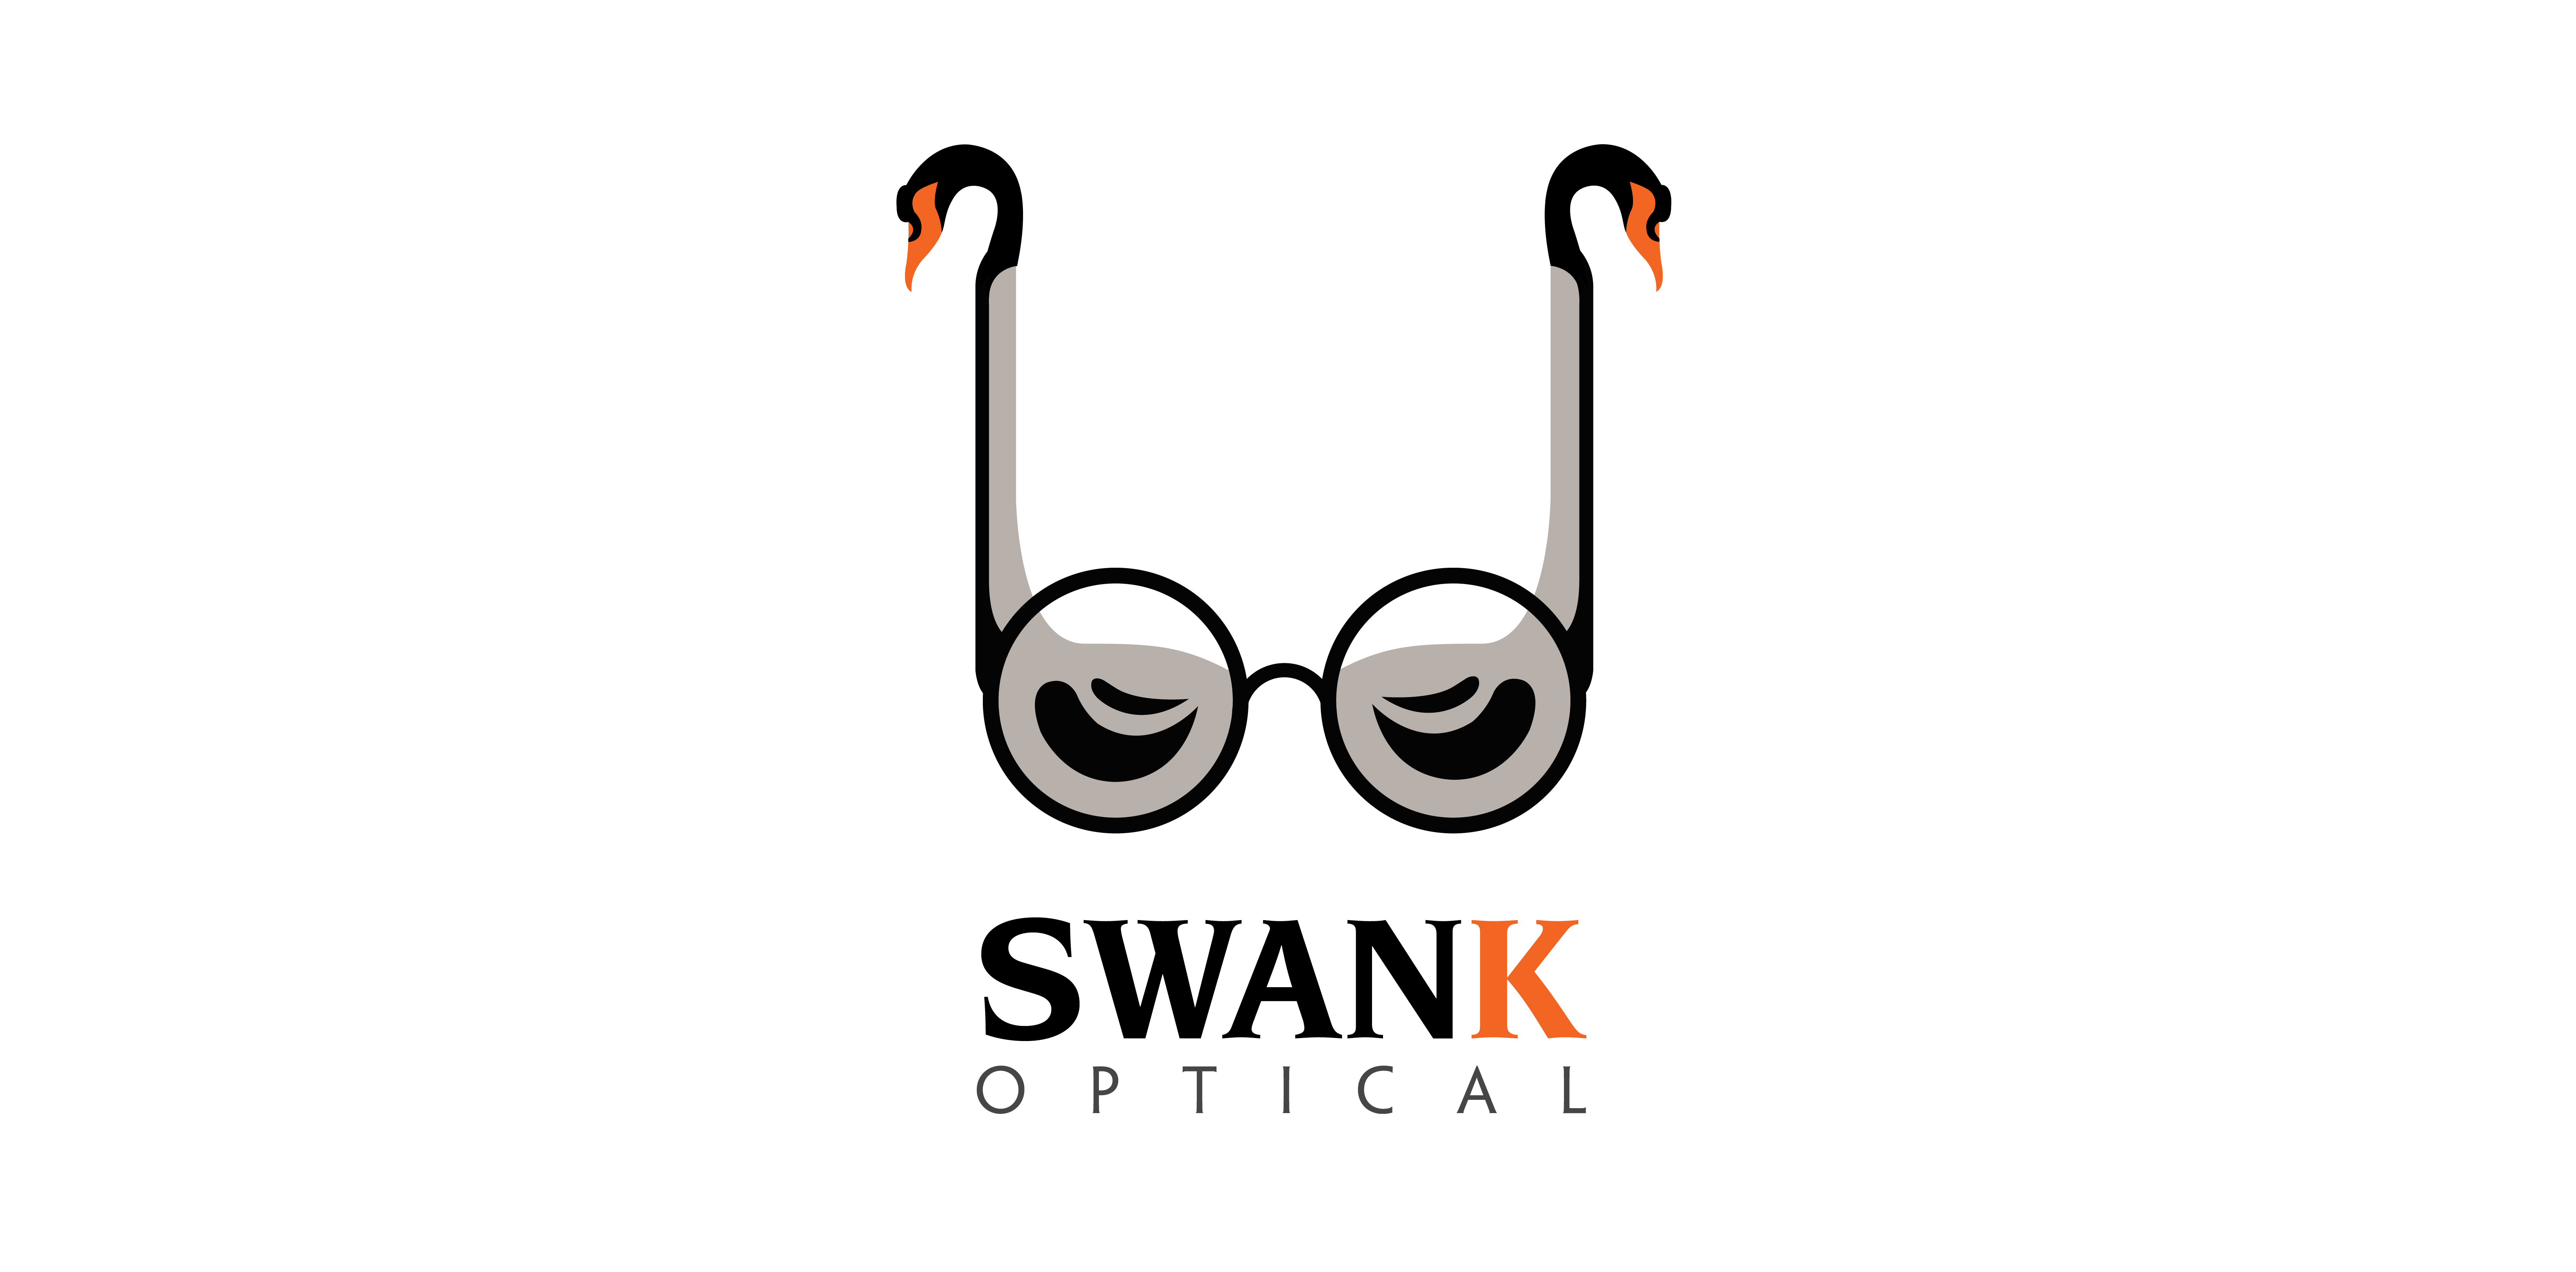 Swank Optical